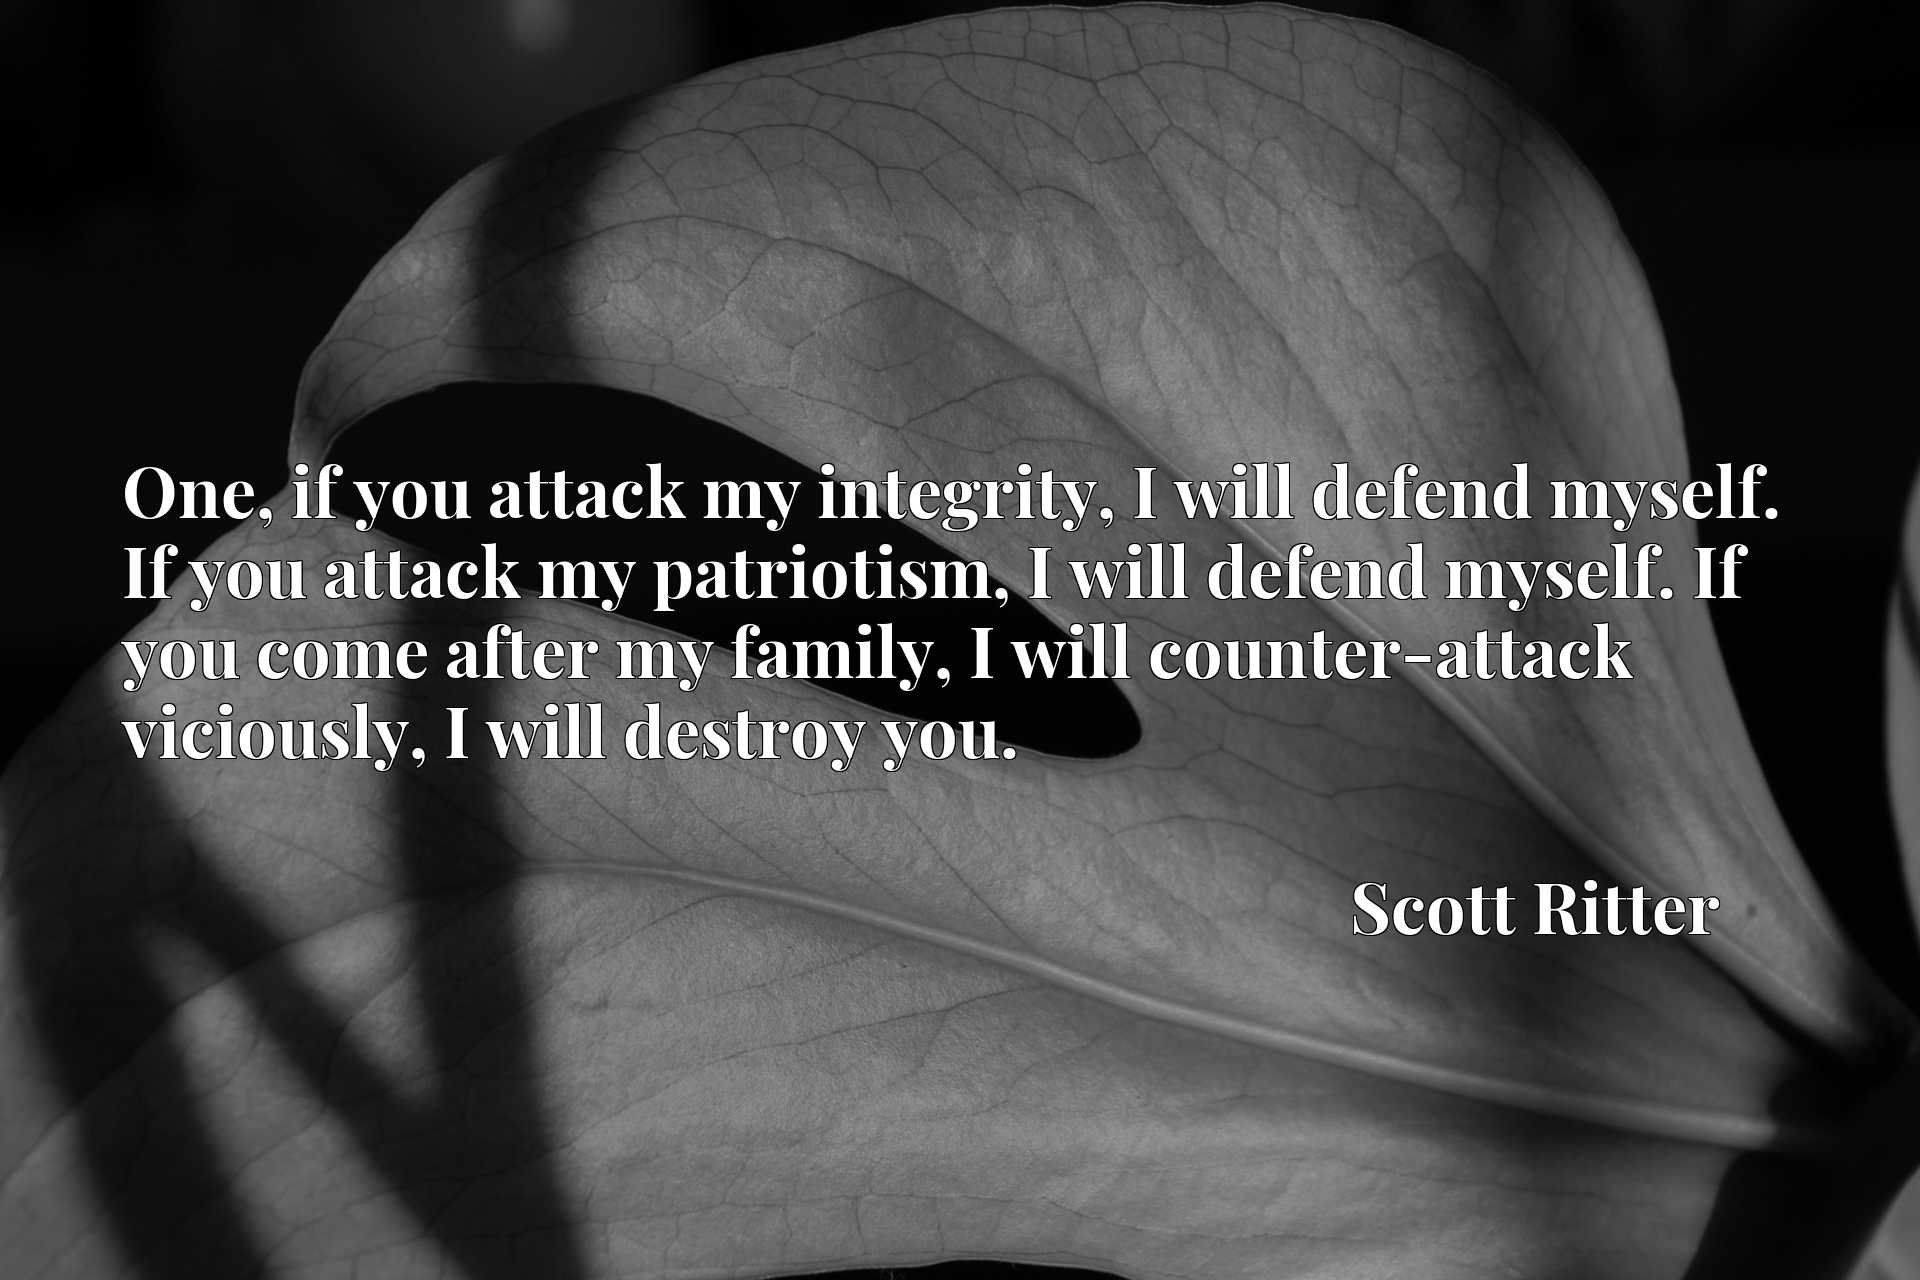 One, if you attack my integrity, I will defend myself. If you attack my patriotism, I will defend myself. If you come after my family, I will counter-attack viciously, I will destroy you.